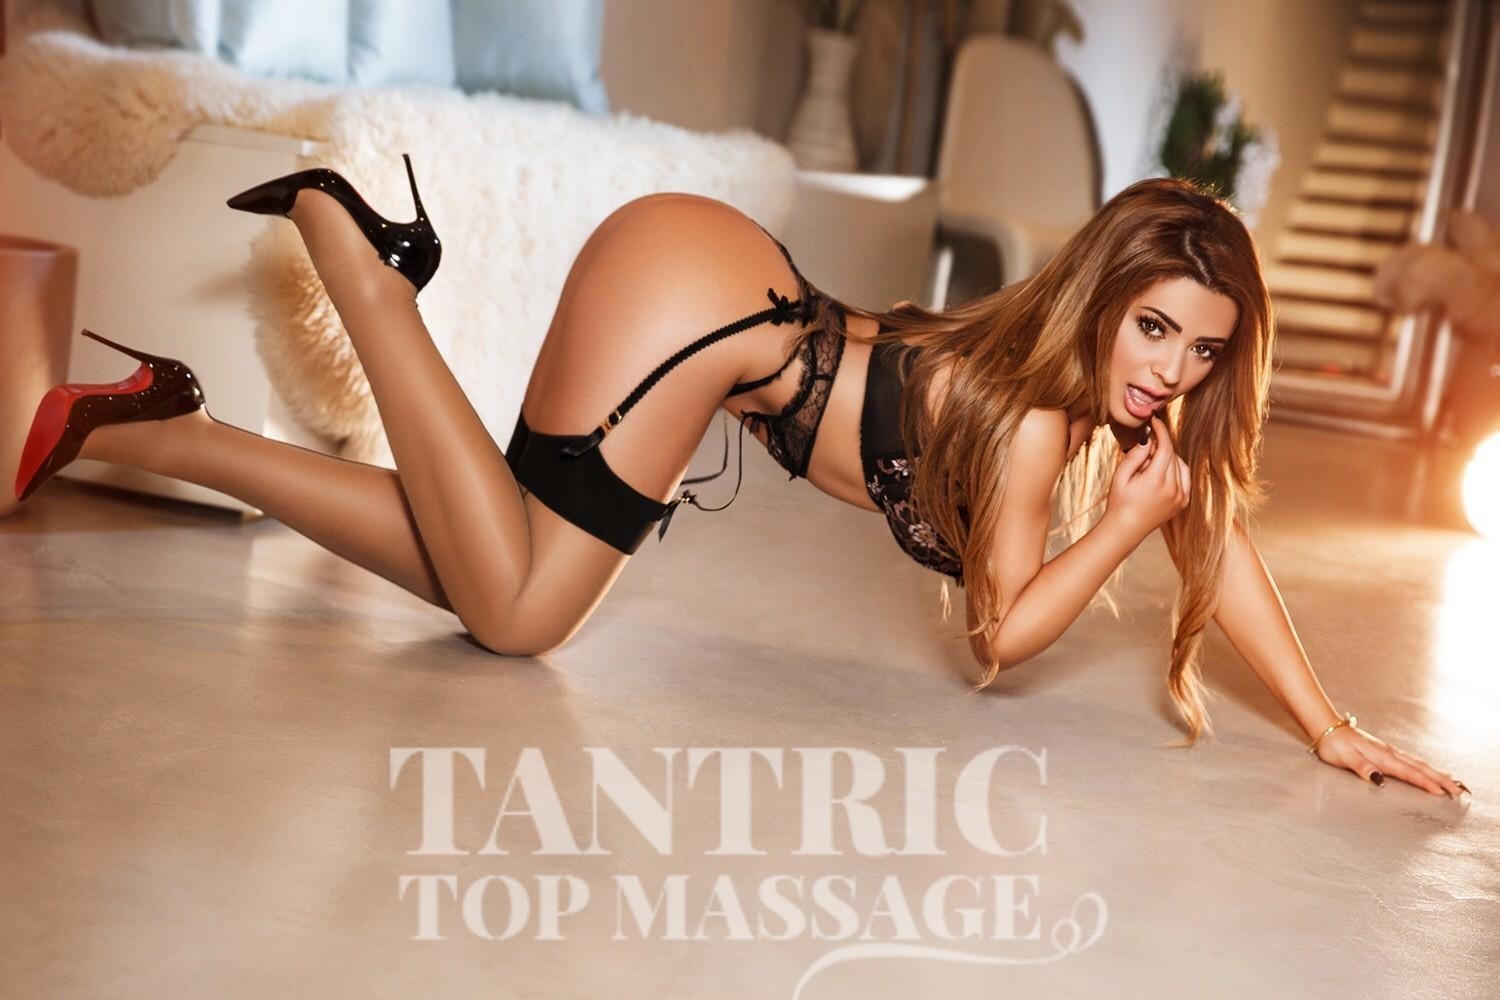 Bianca from Tantric Top Massage